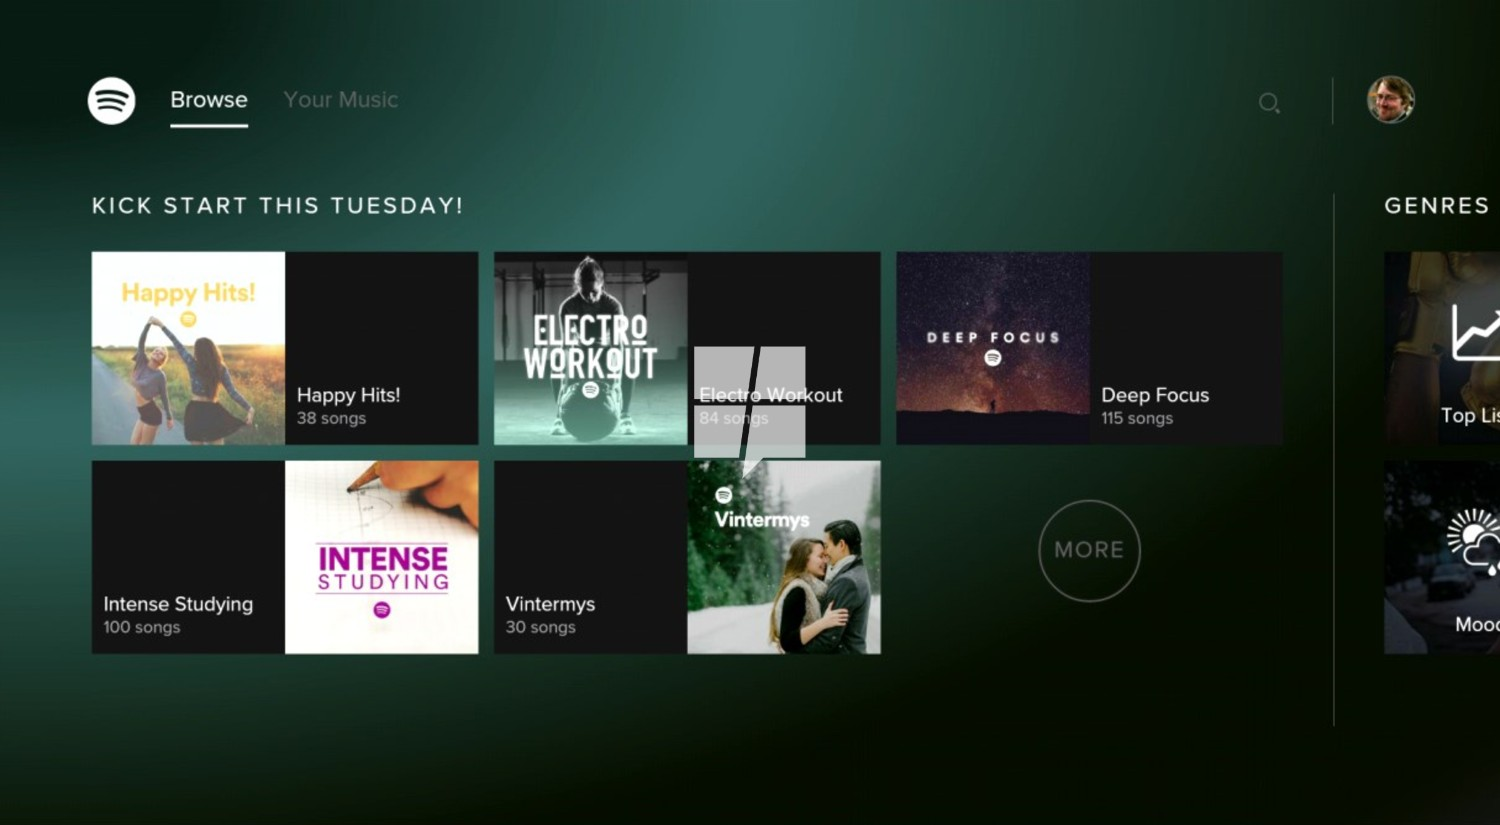 This is Spotify for the Xbox One 1